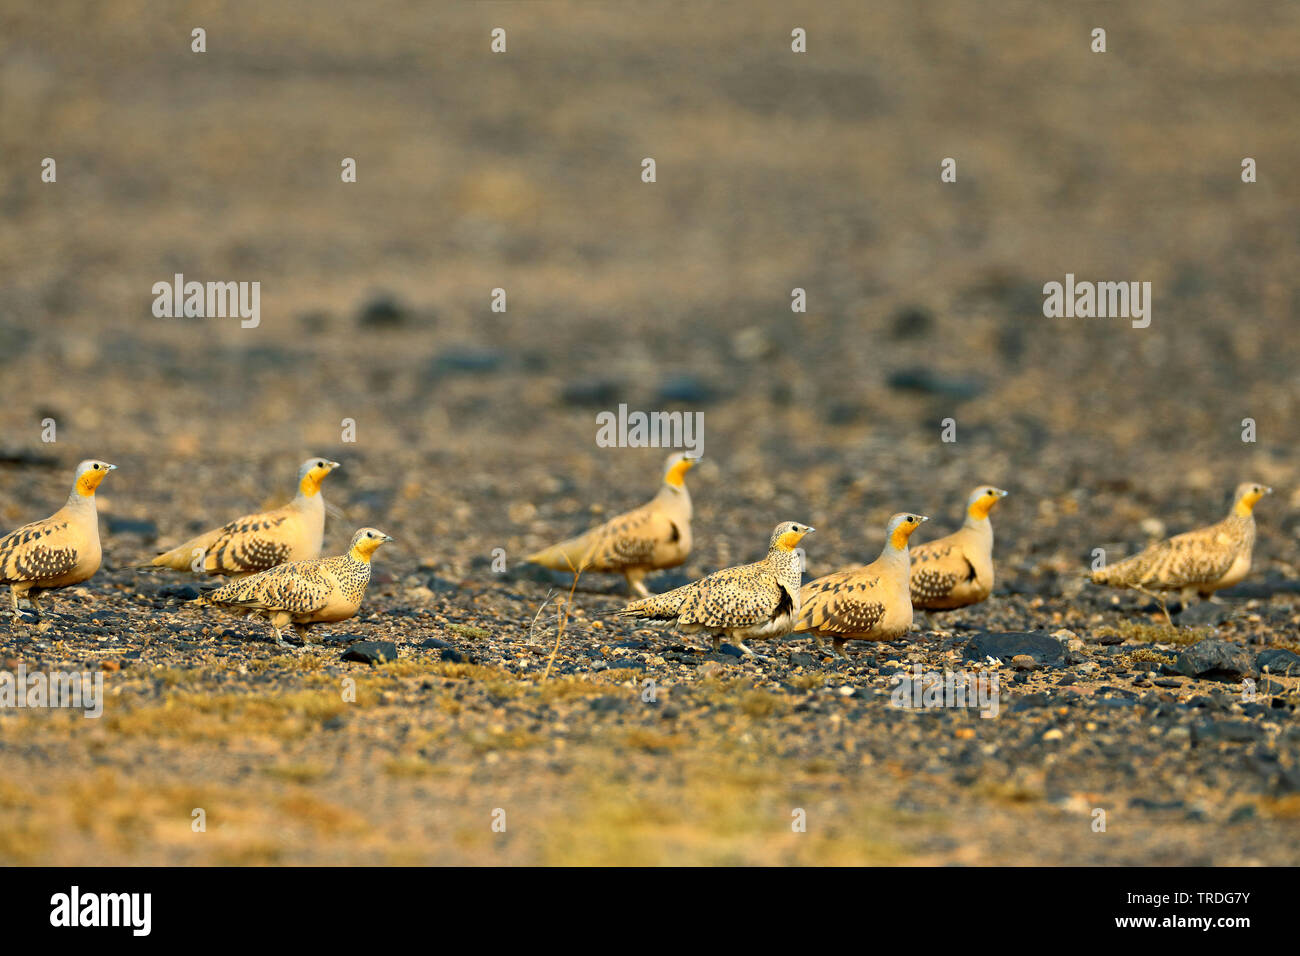 spotted sandgrouse (Pterocles senegallus), walking troop in the desert, Morocco, Merzouga Stock Photo